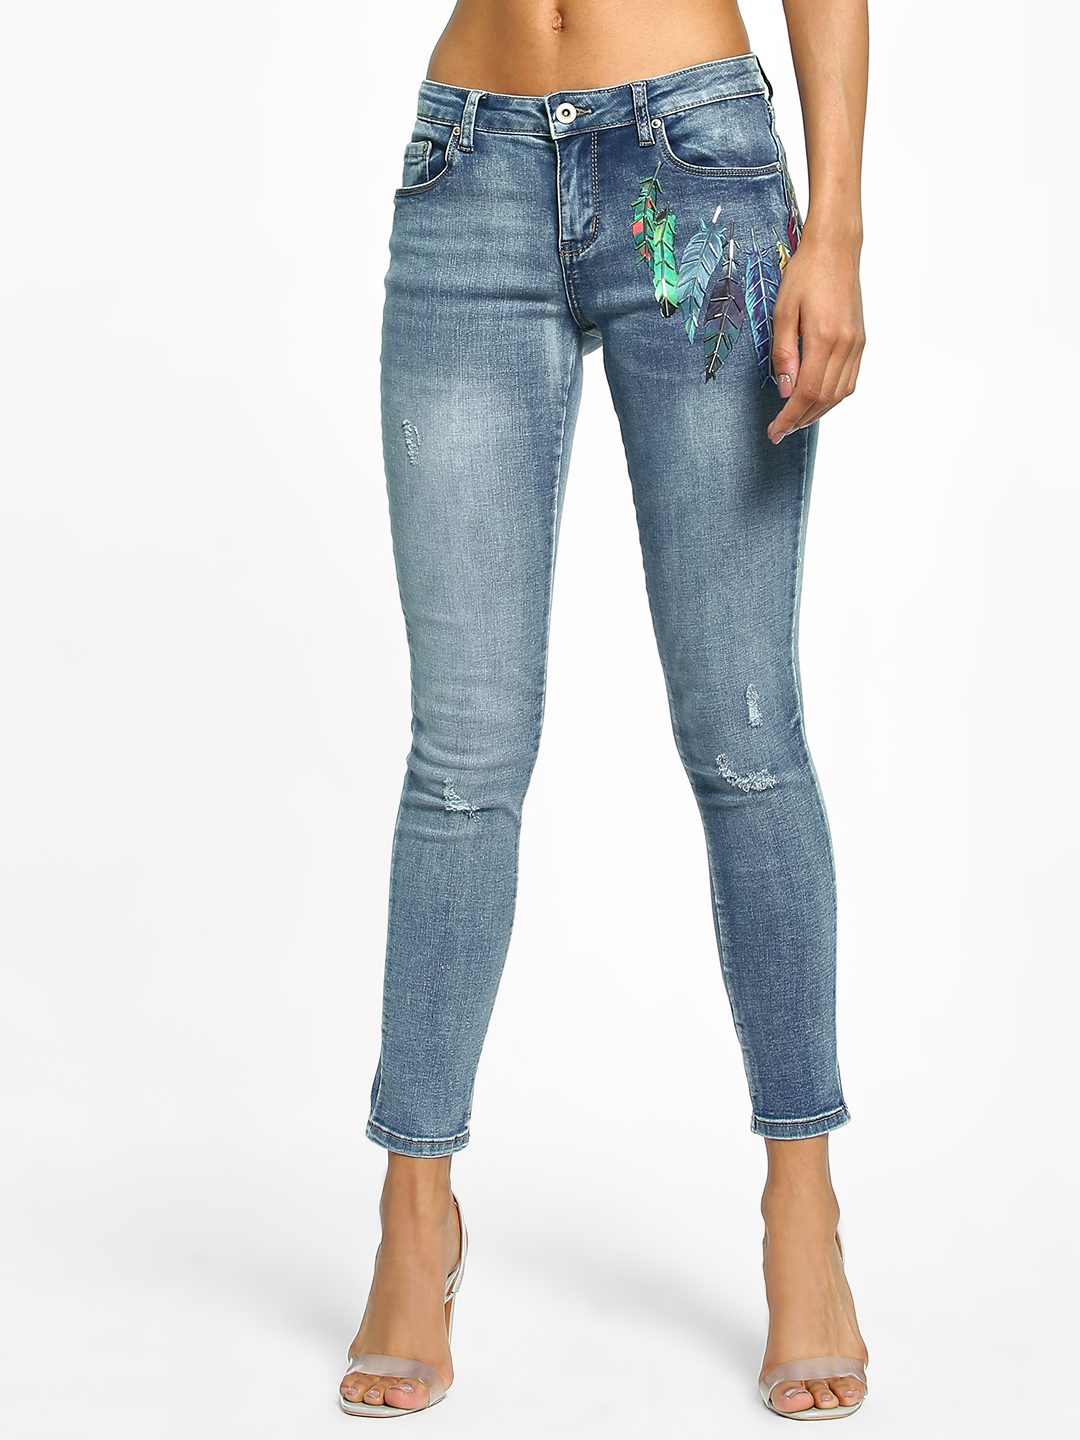 Toxik3 Blue Beaded Feather Print Skinny Jeans 1